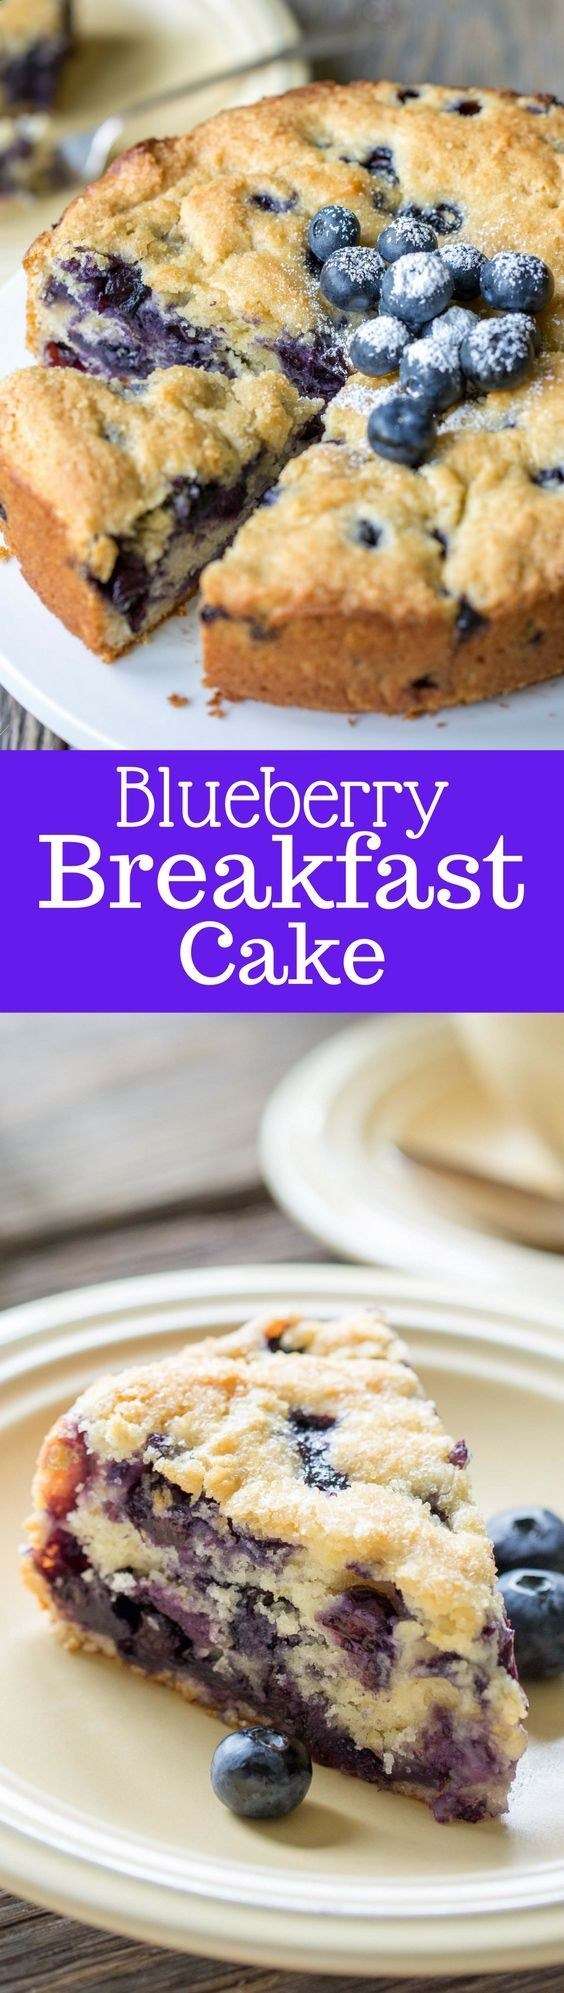 Blueberry Breakfast Cake a deliciously moist and lightly